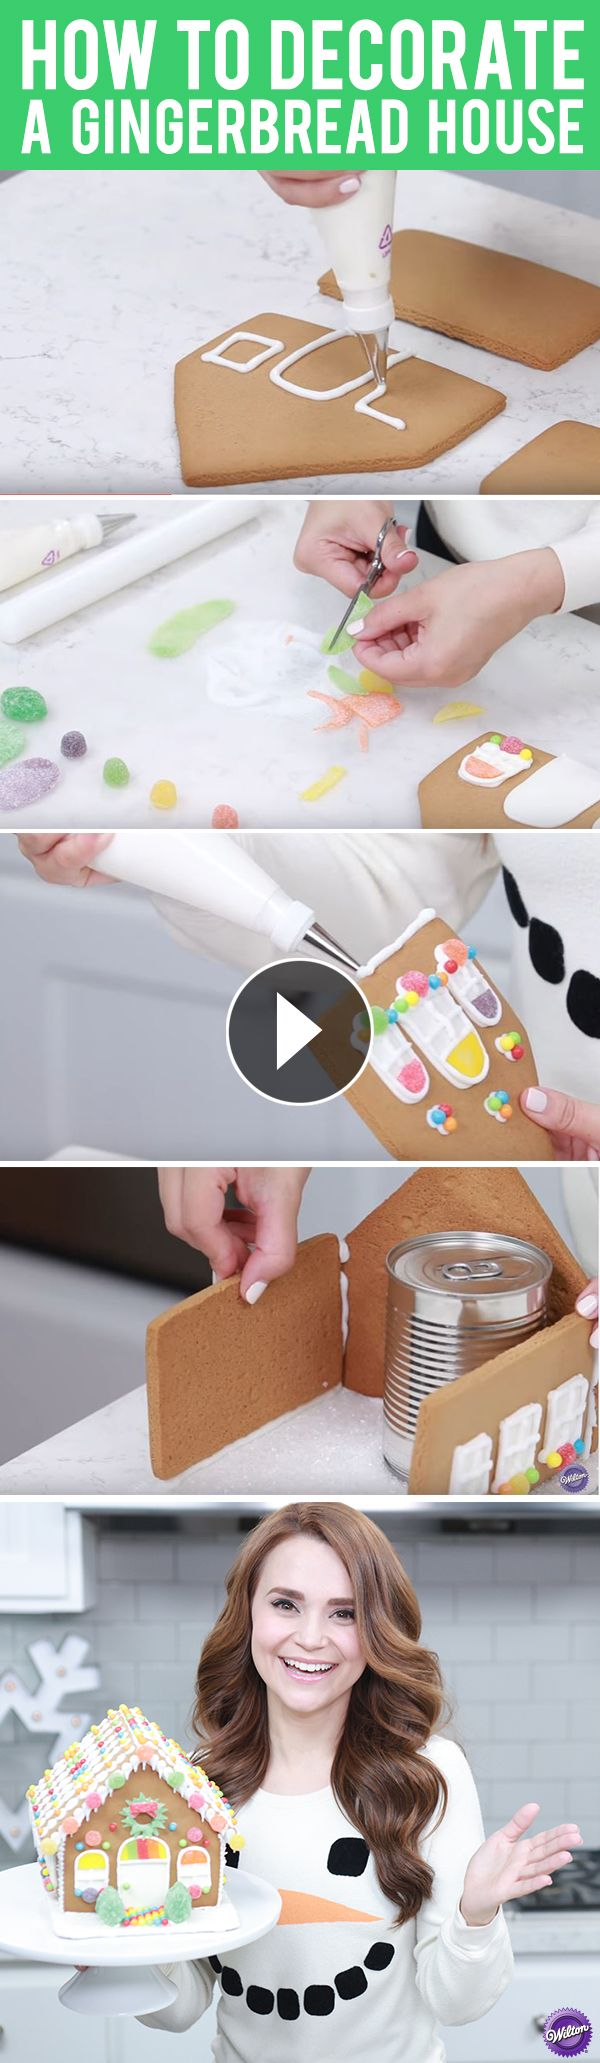 How to Decorate a Gingerbread House - Rosanna Pansino of Nerdy Nummies makes it easy for you to decorate your gingerbread house! Watch these six helpful tips on how to decorate and assemble a gingerbread house, so you can be ready for this fun holiday activity with your family and friends!